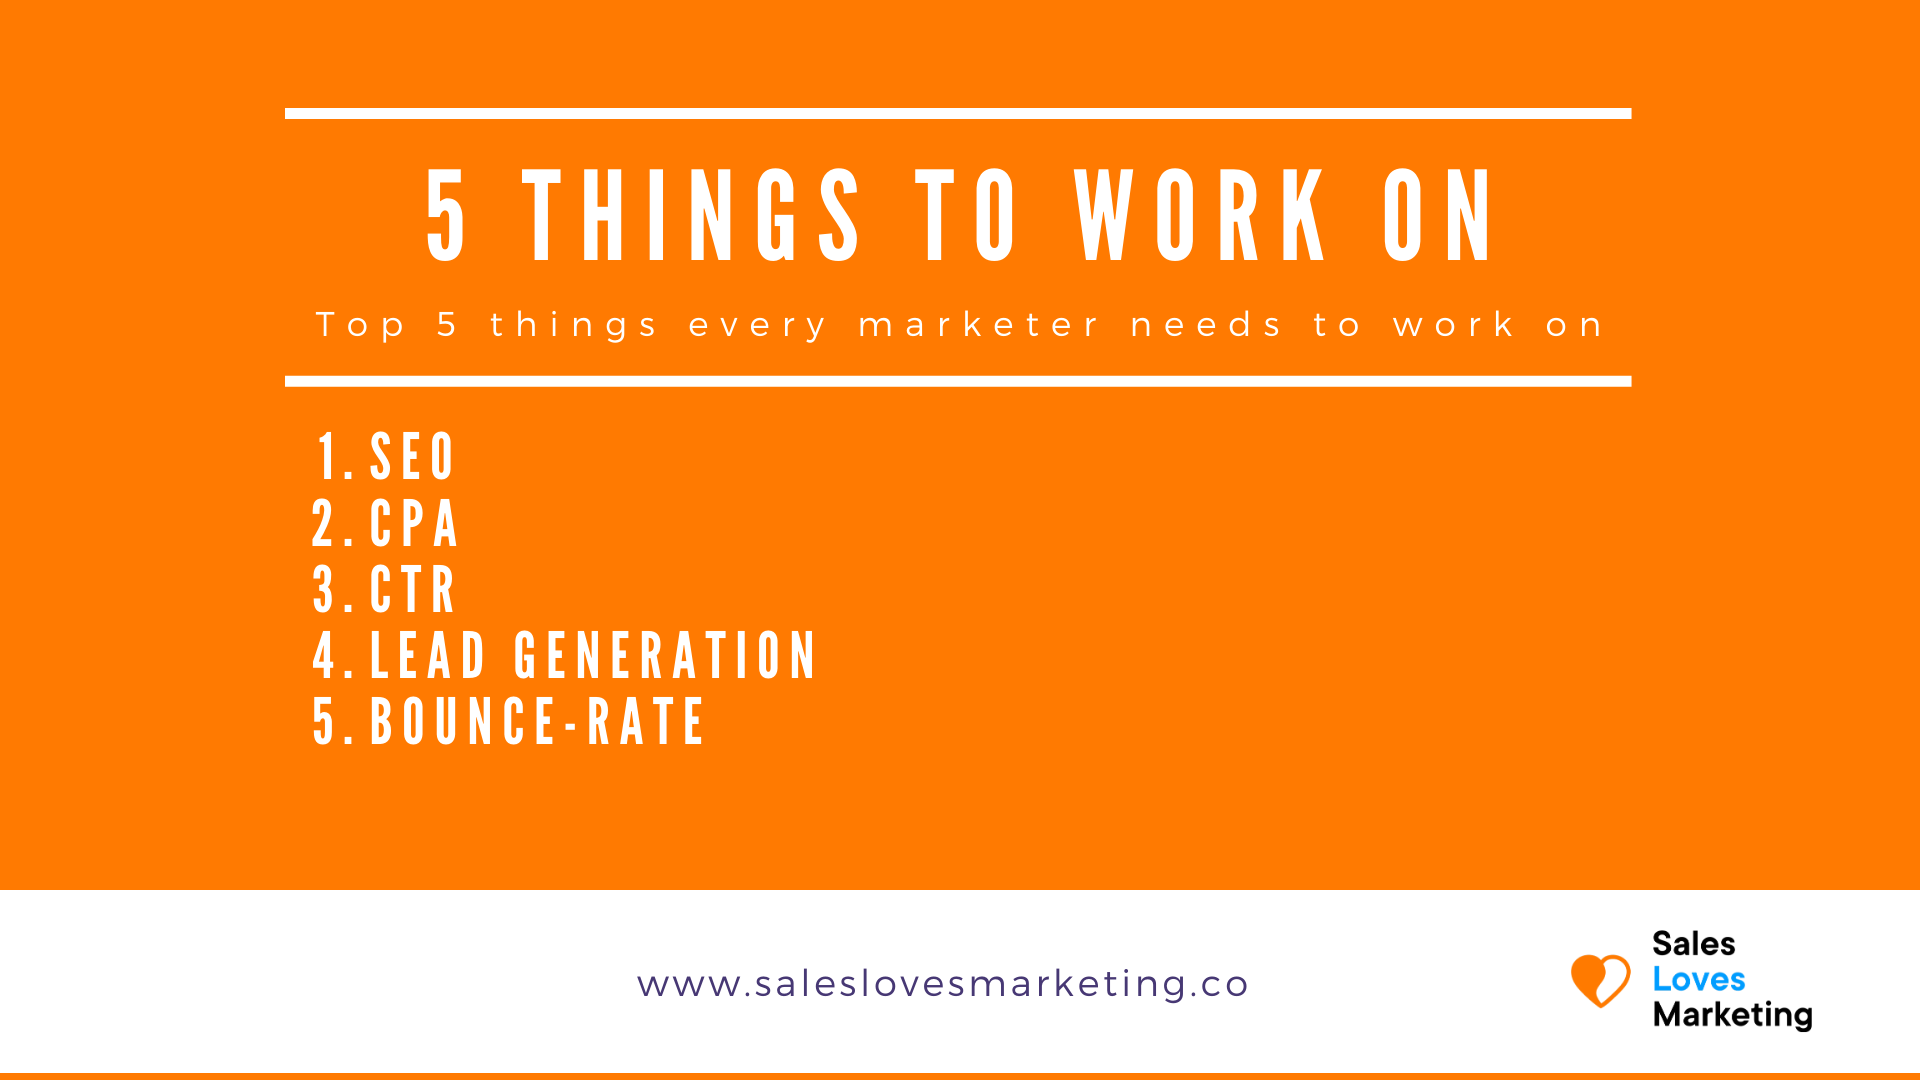 5 top things every marketing should work on.